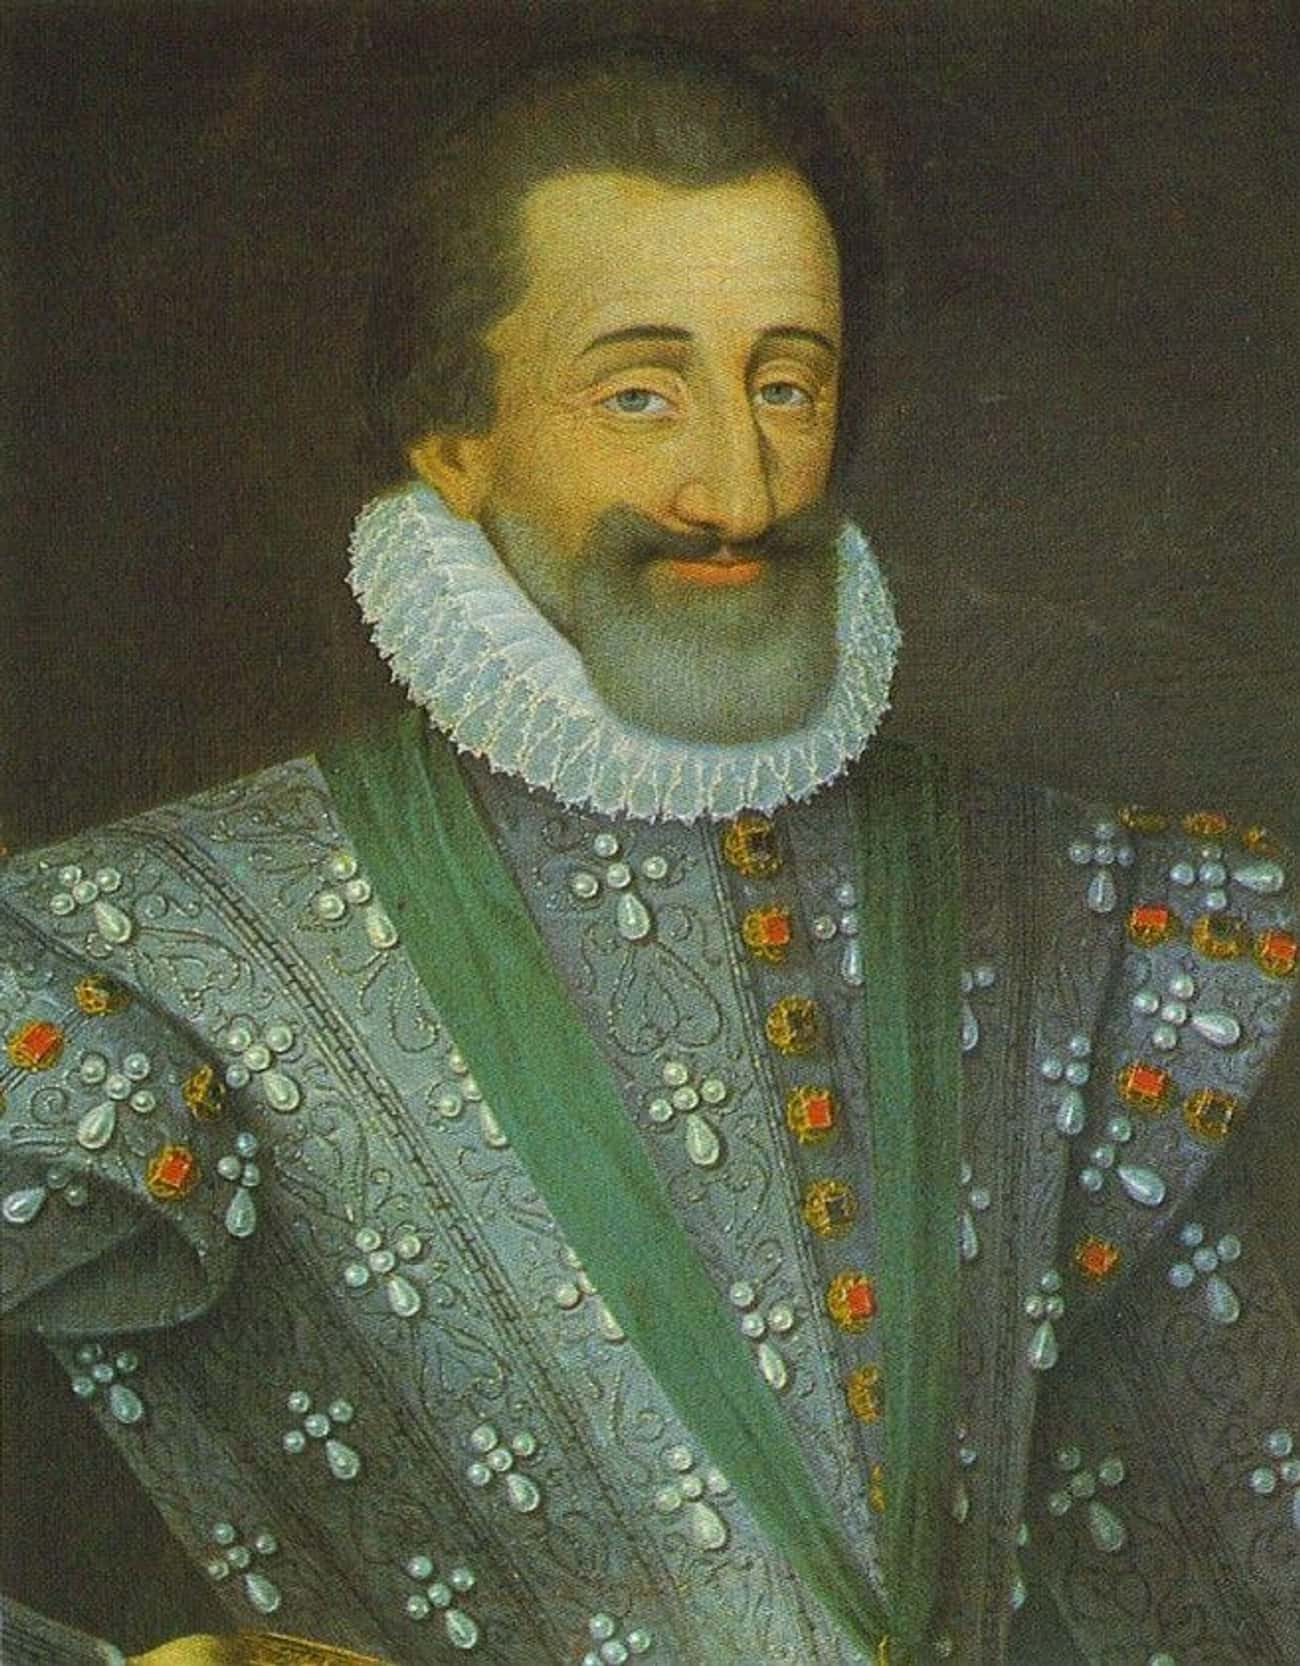 King Henry Of Navarre's Nuptials Turned Into A Massacre